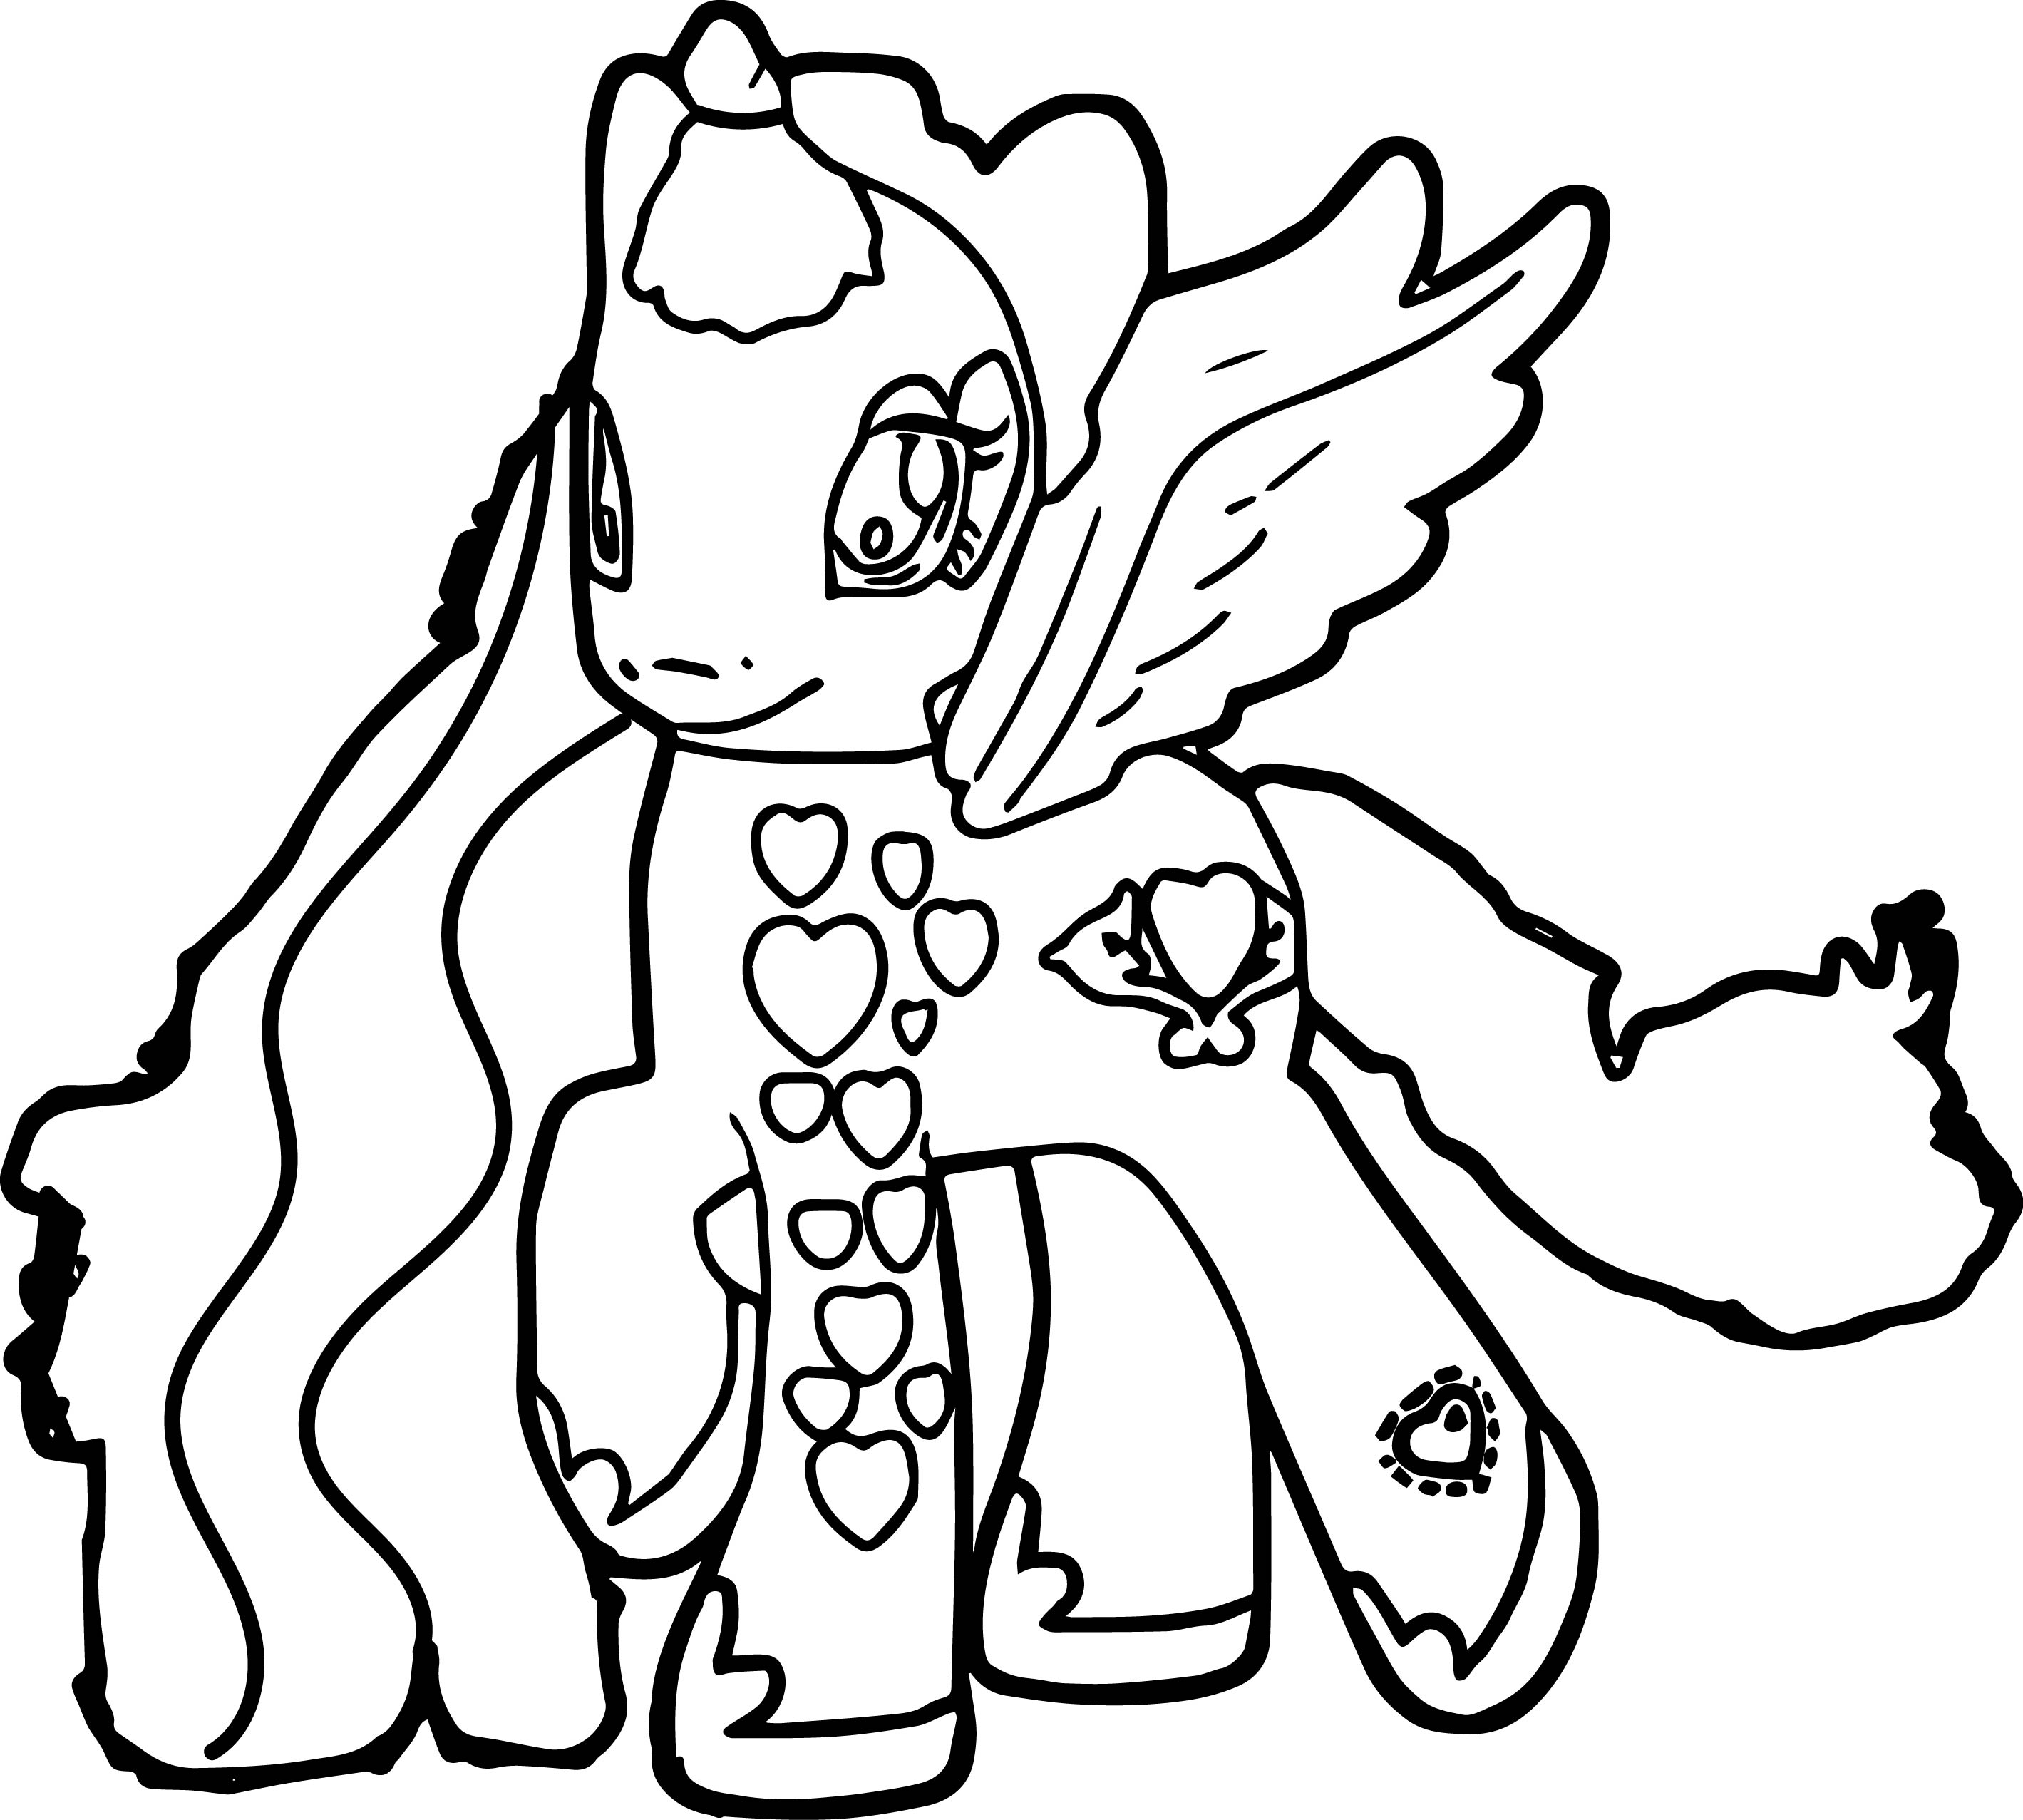 my little pony printables - Vatoz.atozdevelopment.co